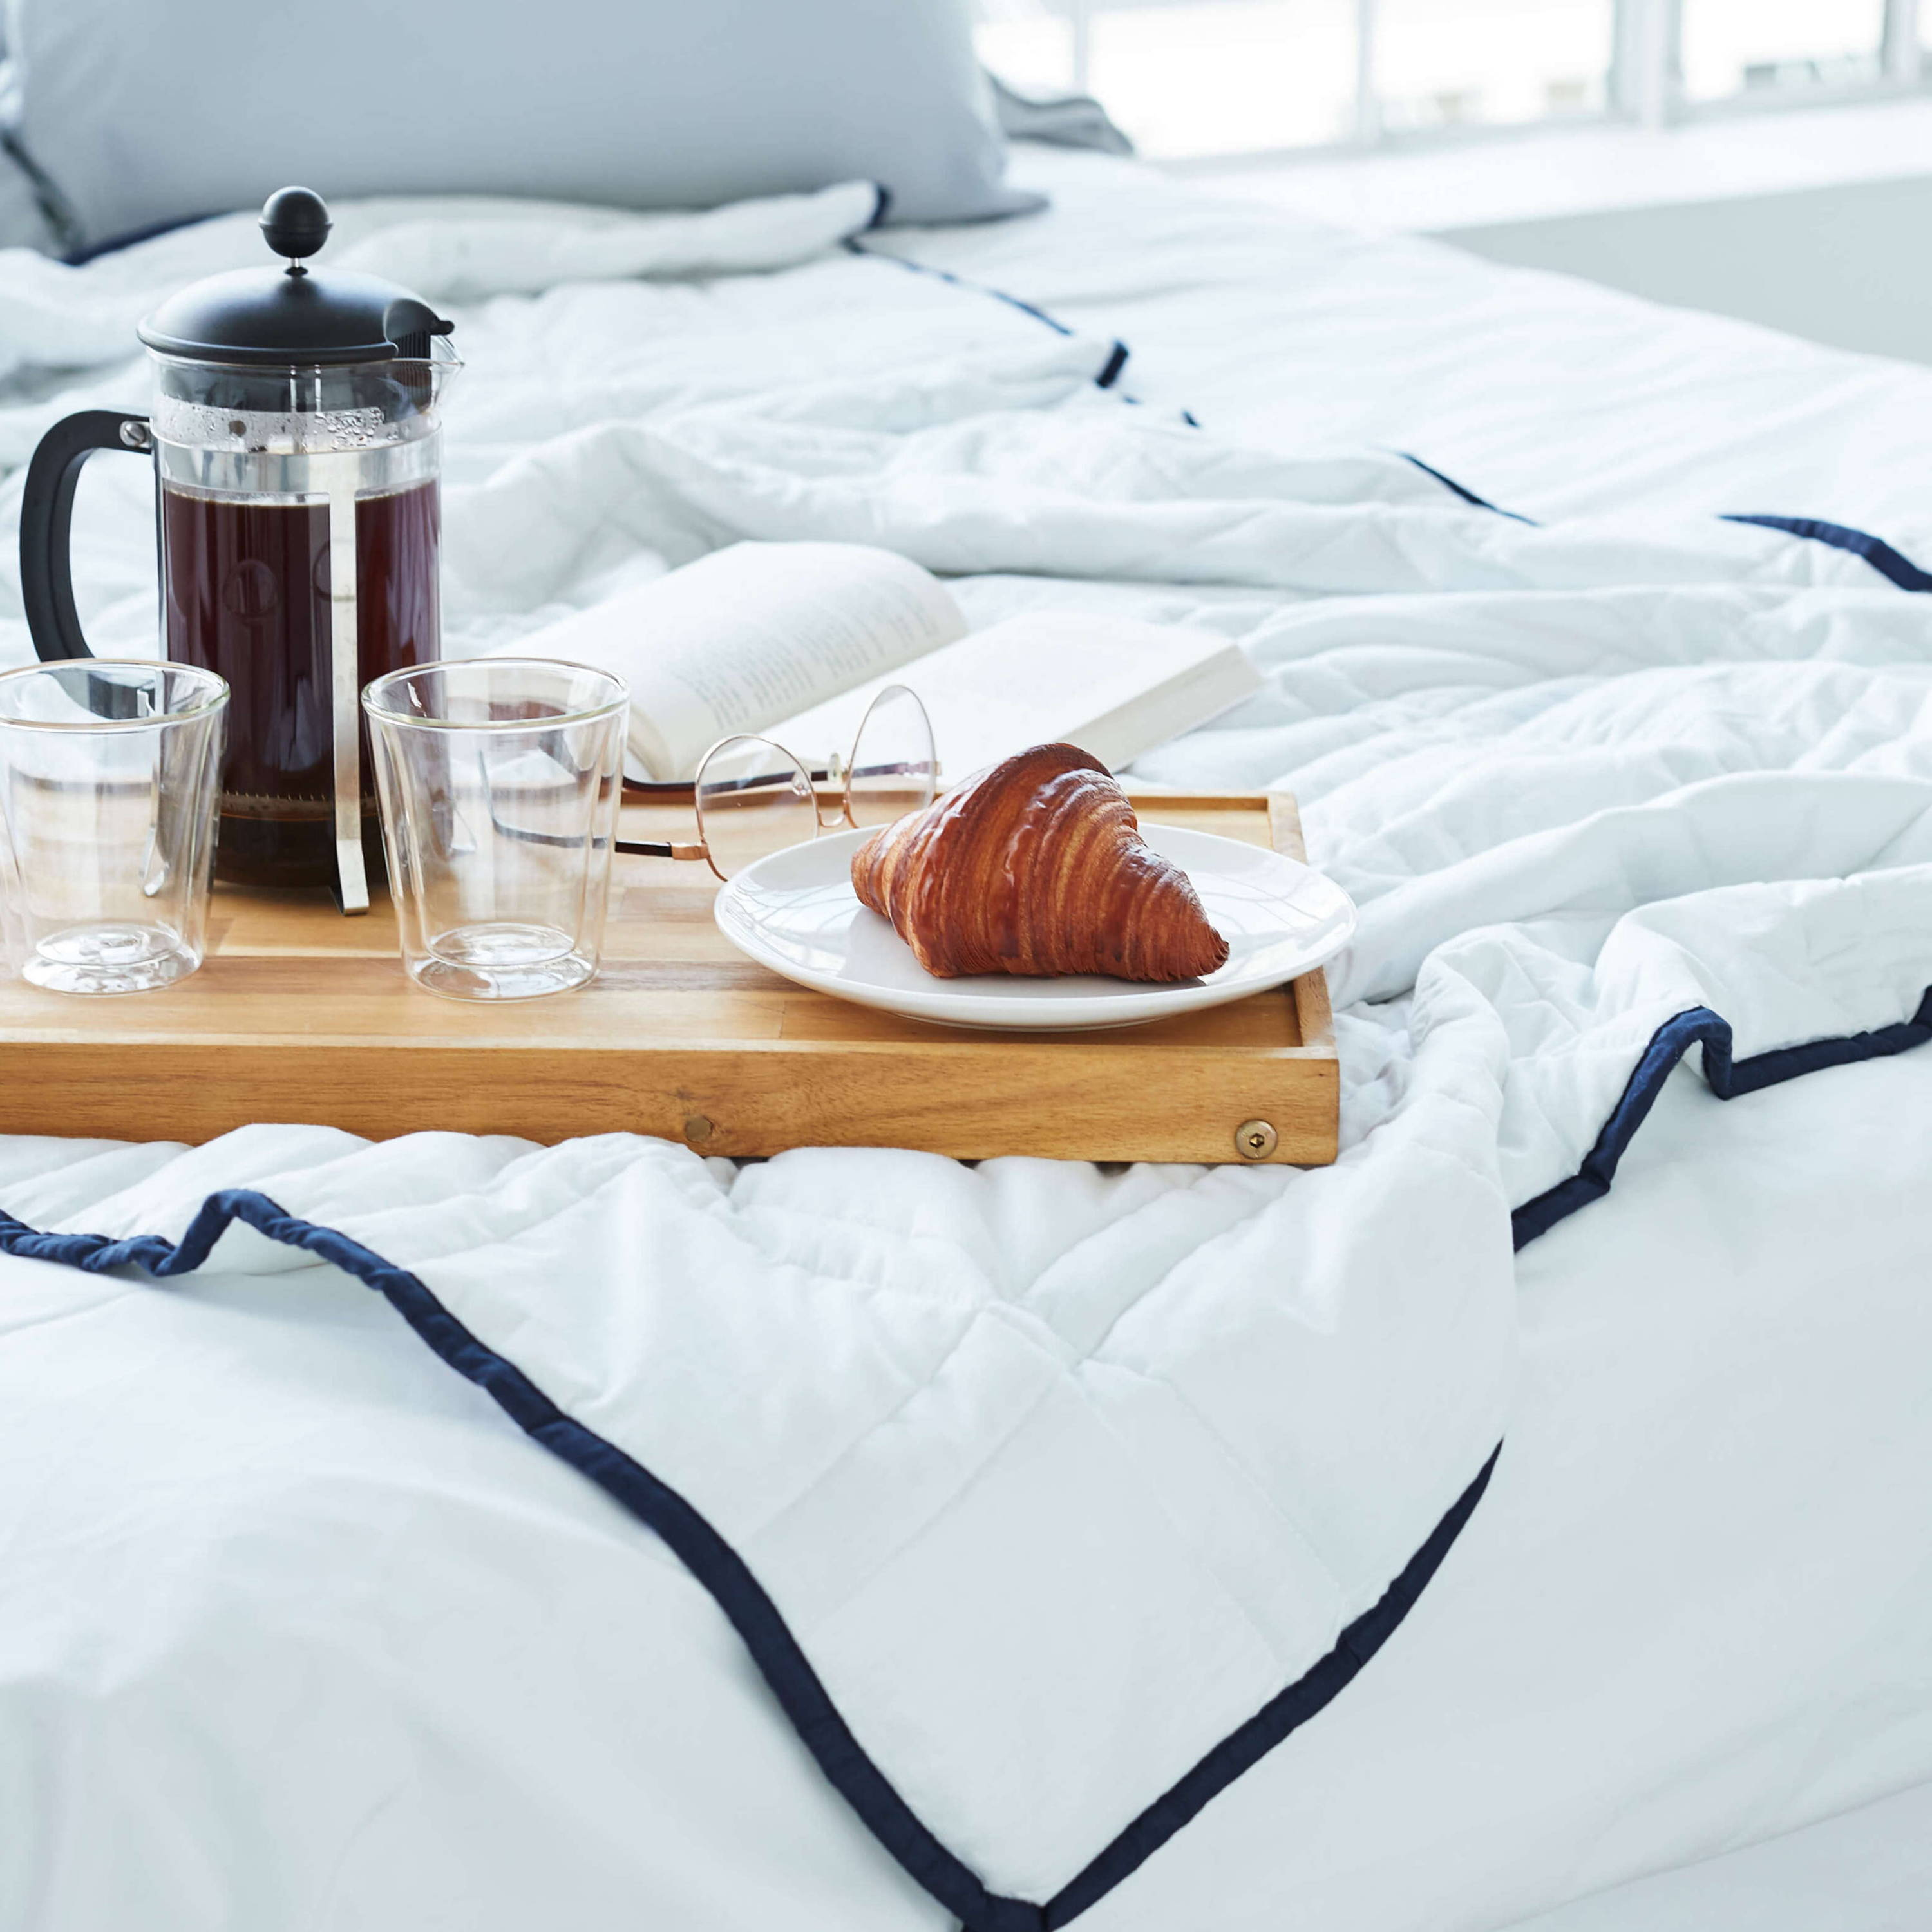 Groundd Weighted Blanket nz out of cover with coffee and croissant